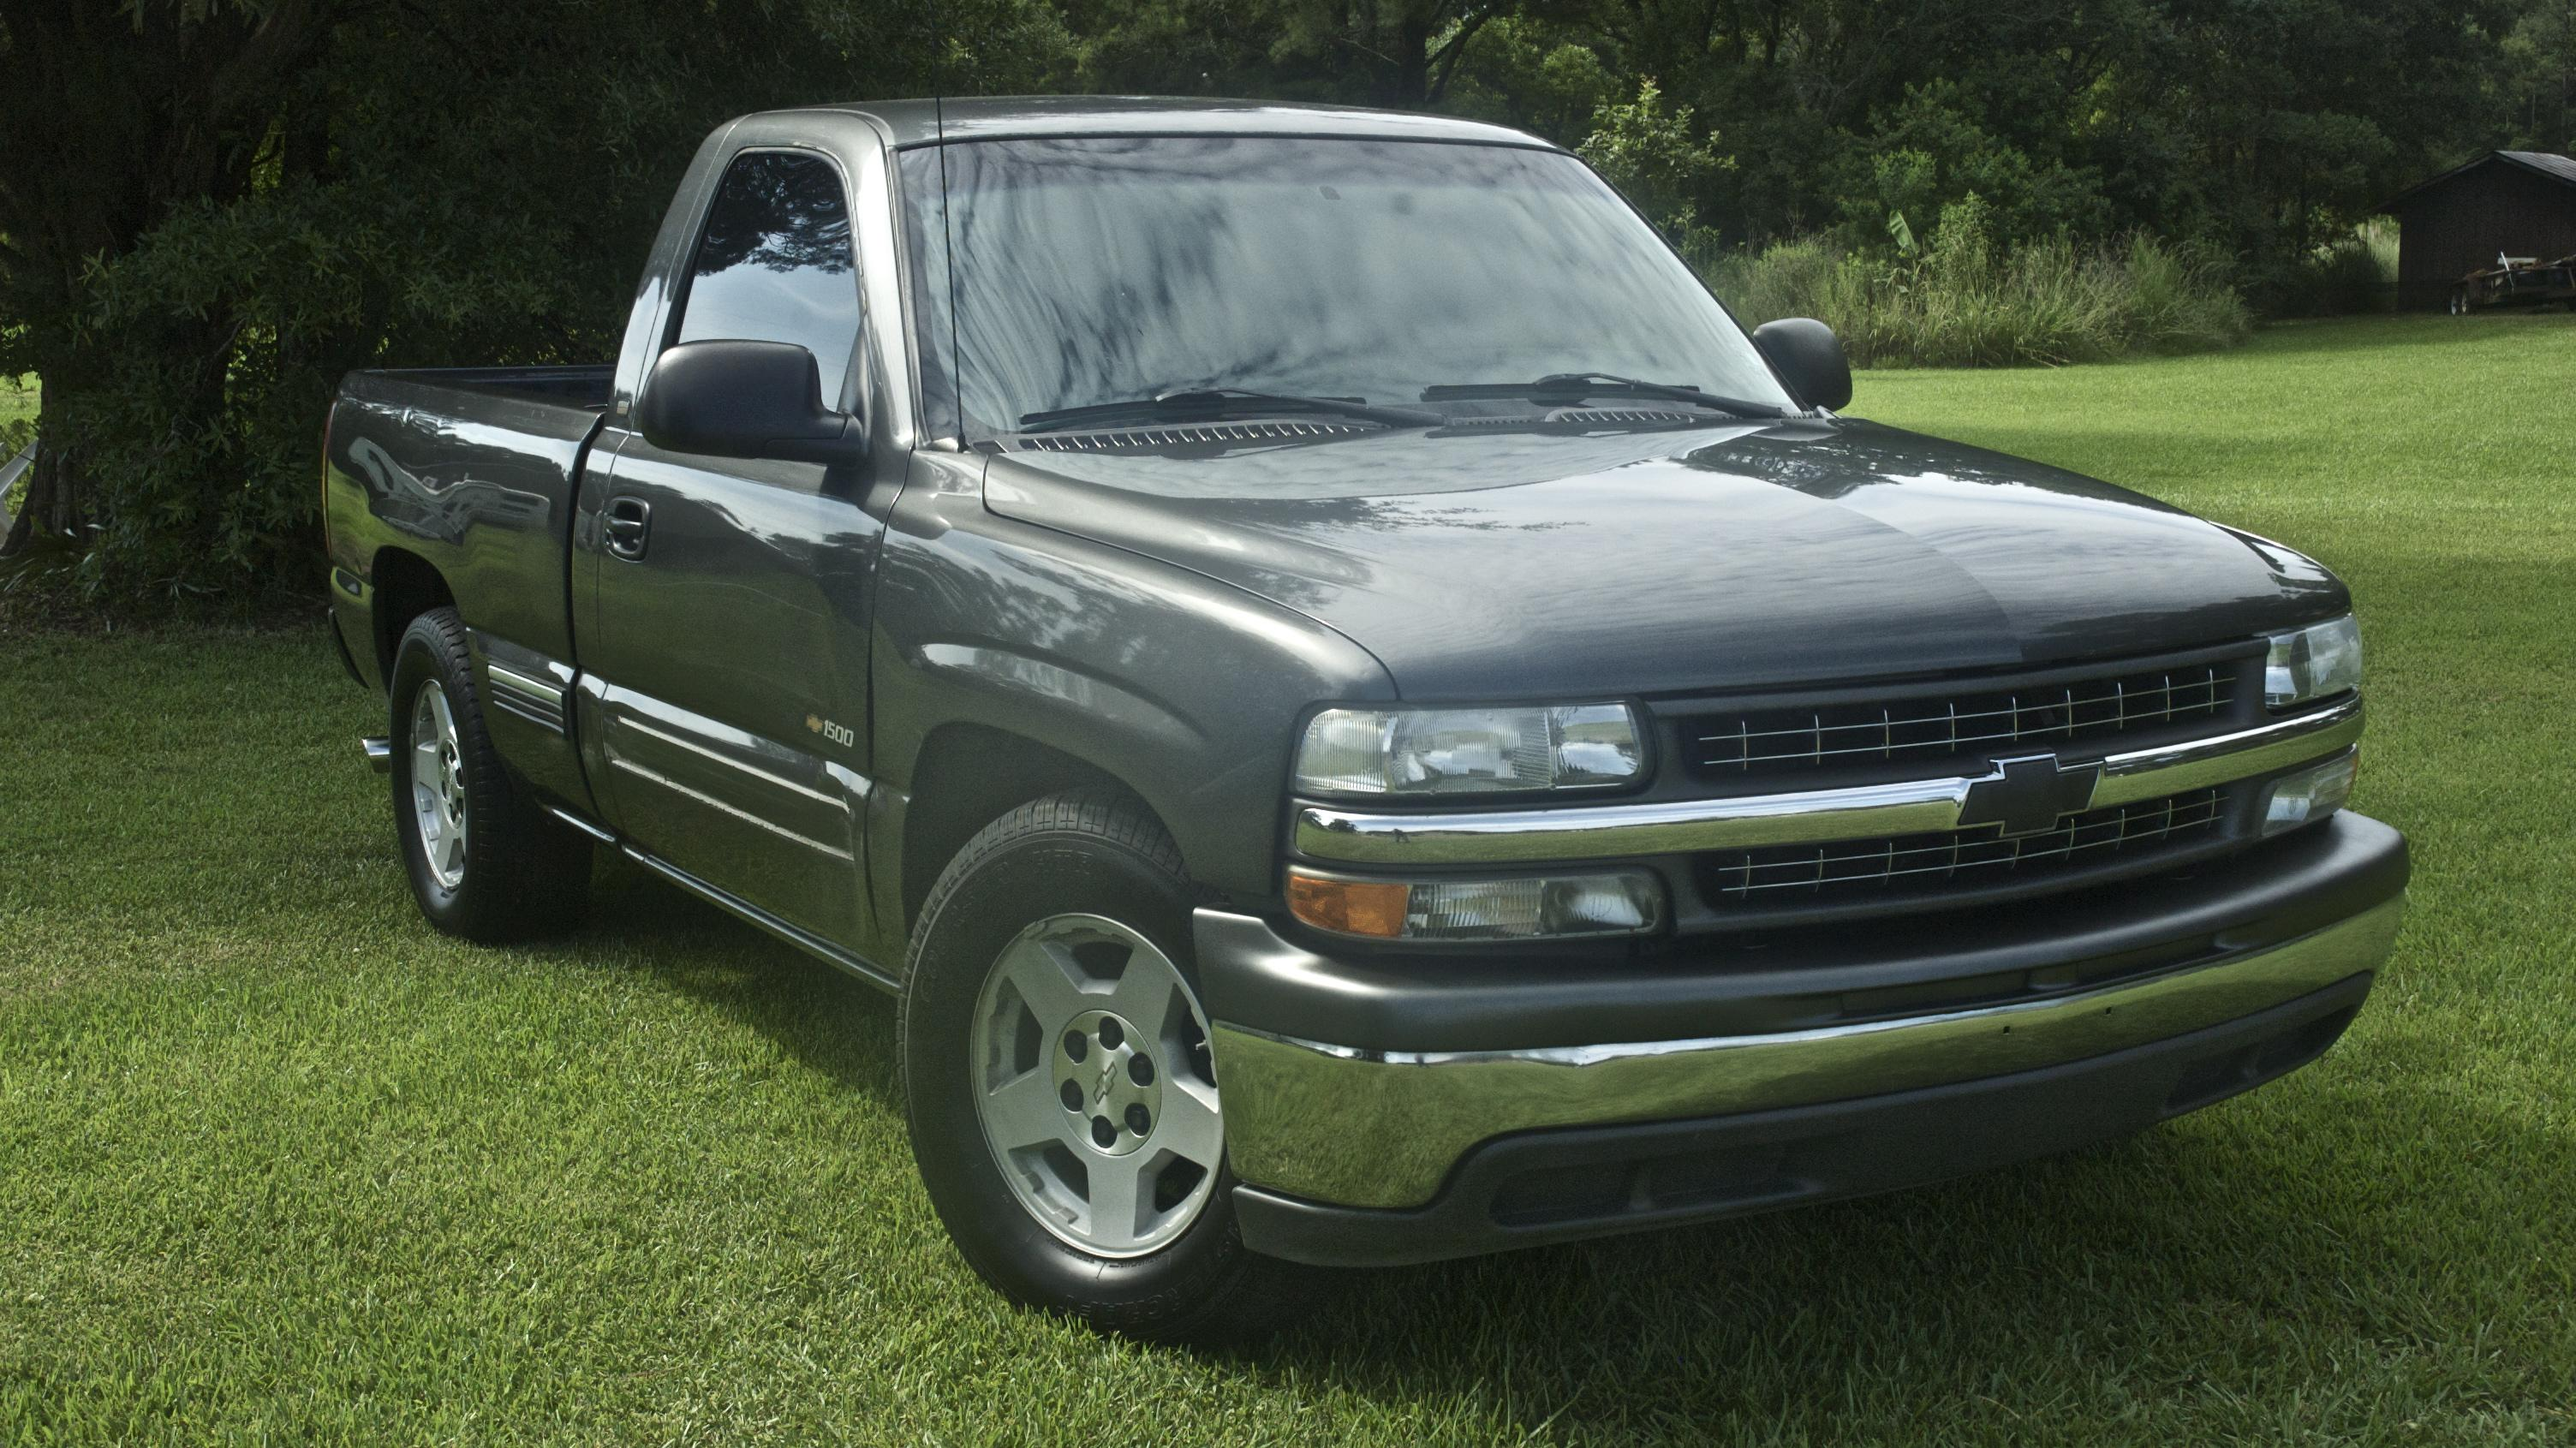 norab 2001 chevrolet silverado 1500 regular cabshort bed. Black Bedroom Furniture Sets. Home Design Ideas